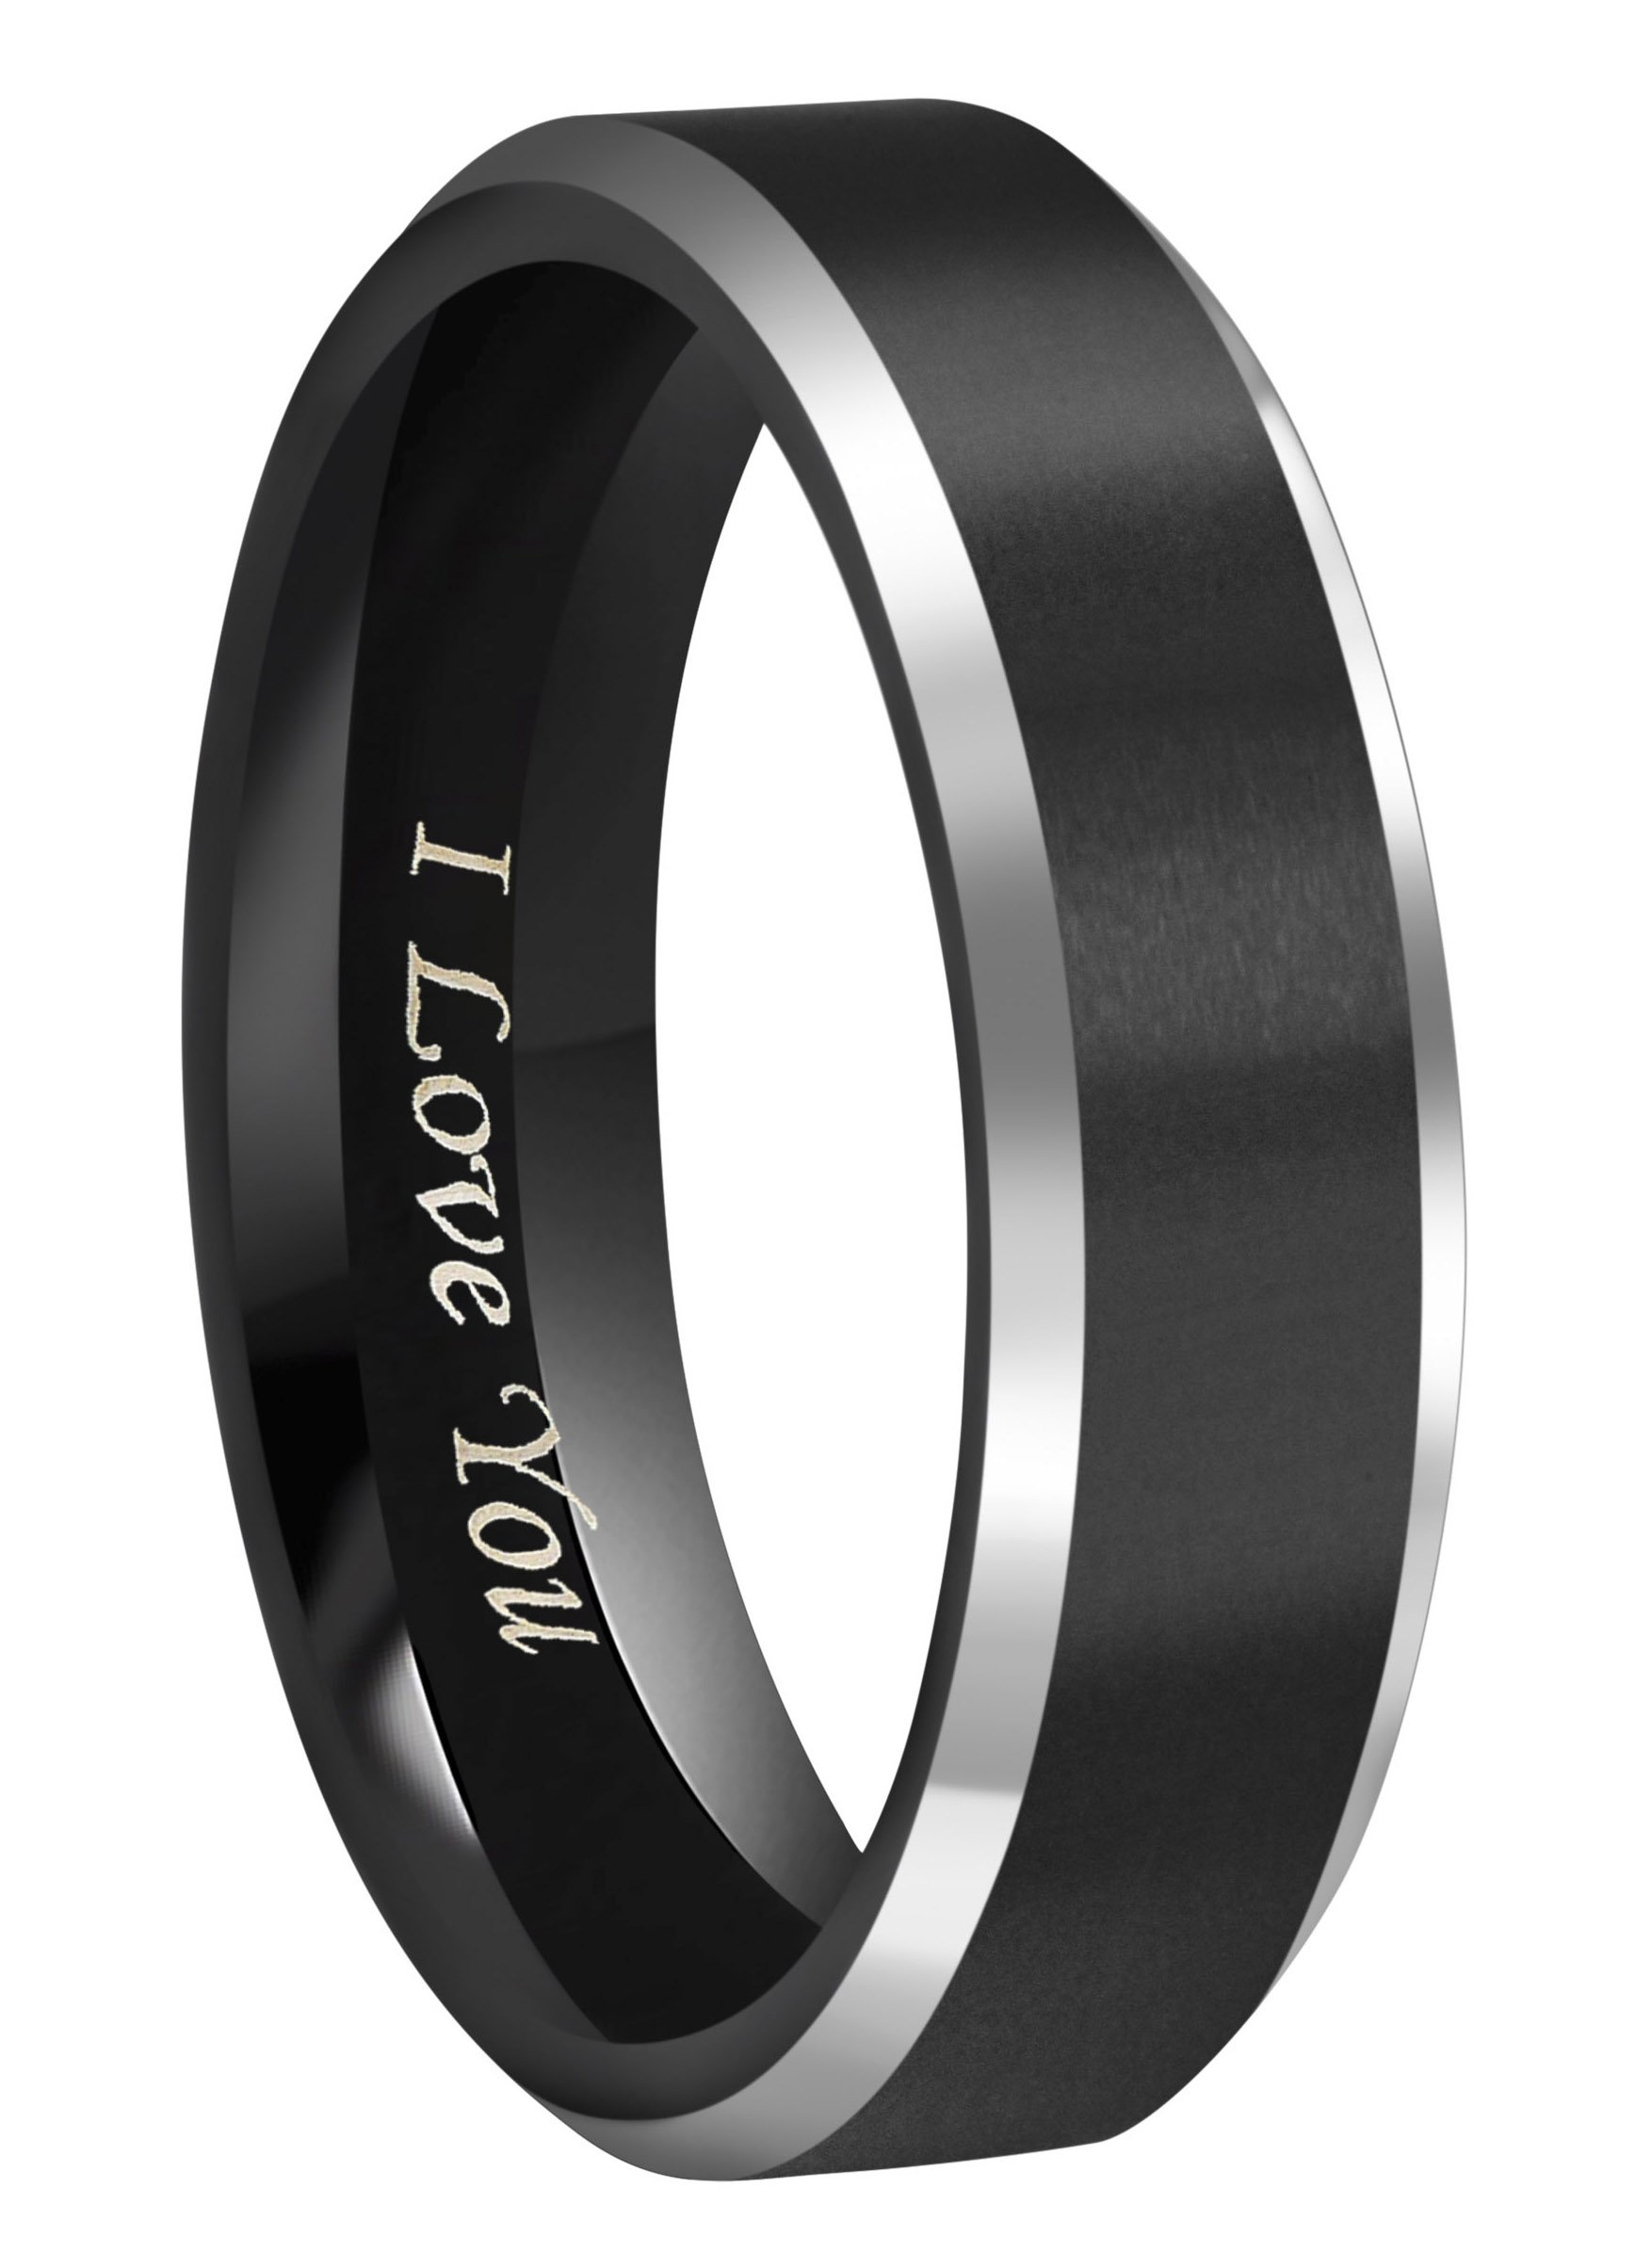 CROWNAL 6mm Black Tungsten Couple Wedding Bands Rings Men Women Polished Beveled Edges Matte Brushed Finish Engraved I Love You Size 3.5 To 17 (6mm,6.5)